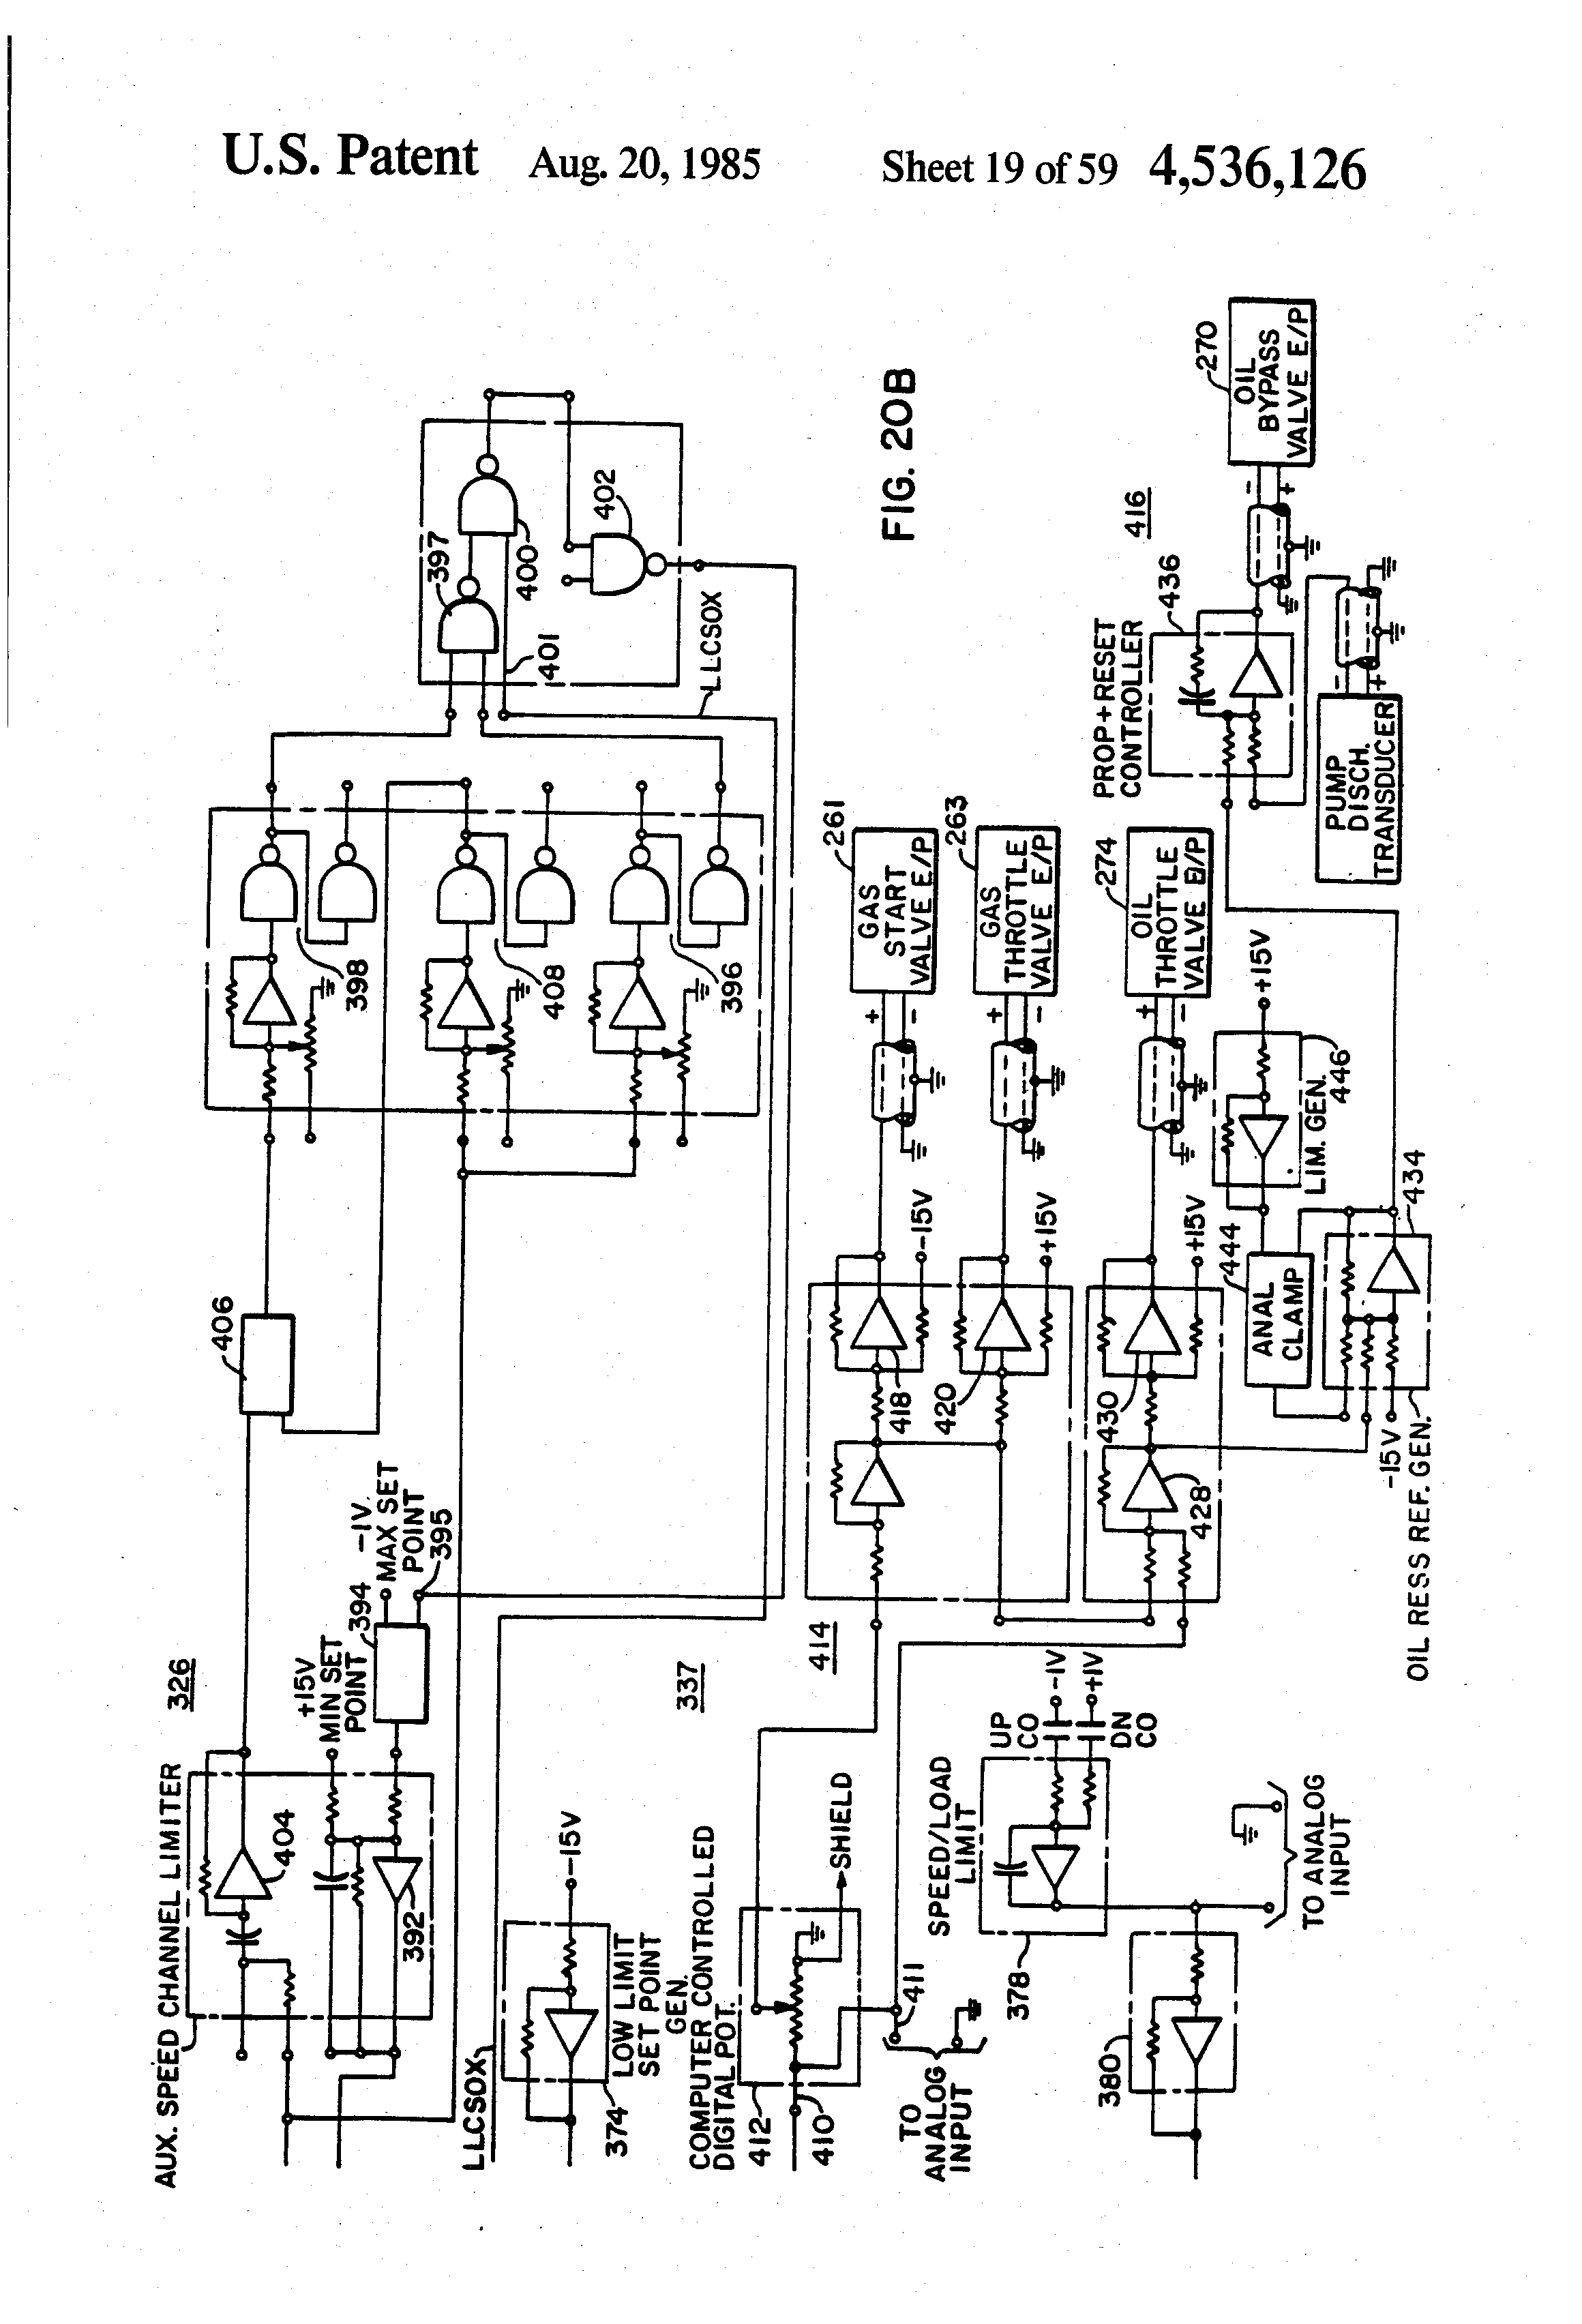 Reliance Electric Motor Wiring Diagram Com